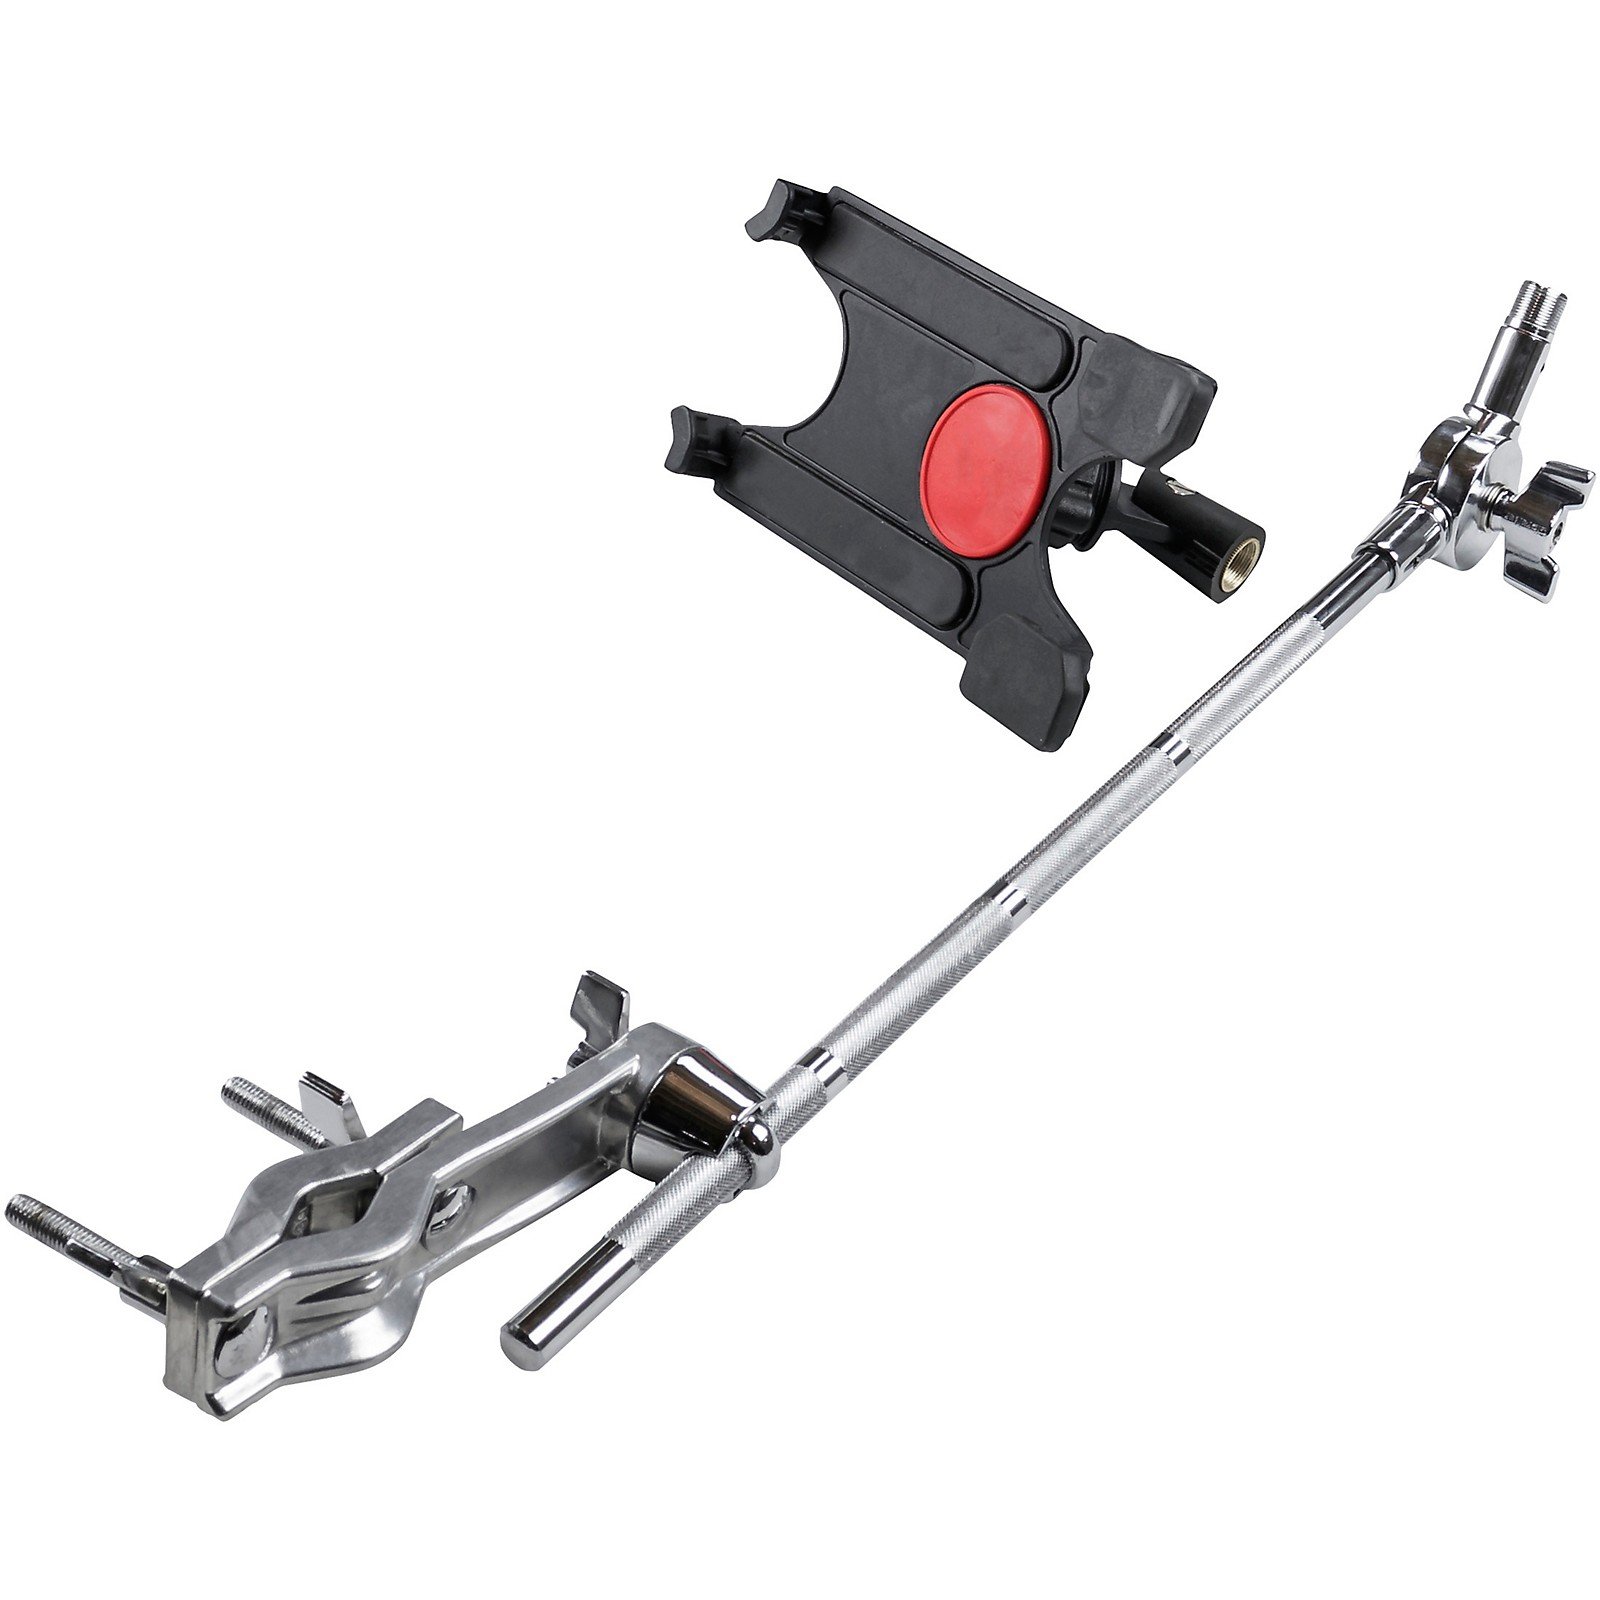 Gibraltar Tablet Mount with Long Boom Arm and Crabber Clamp